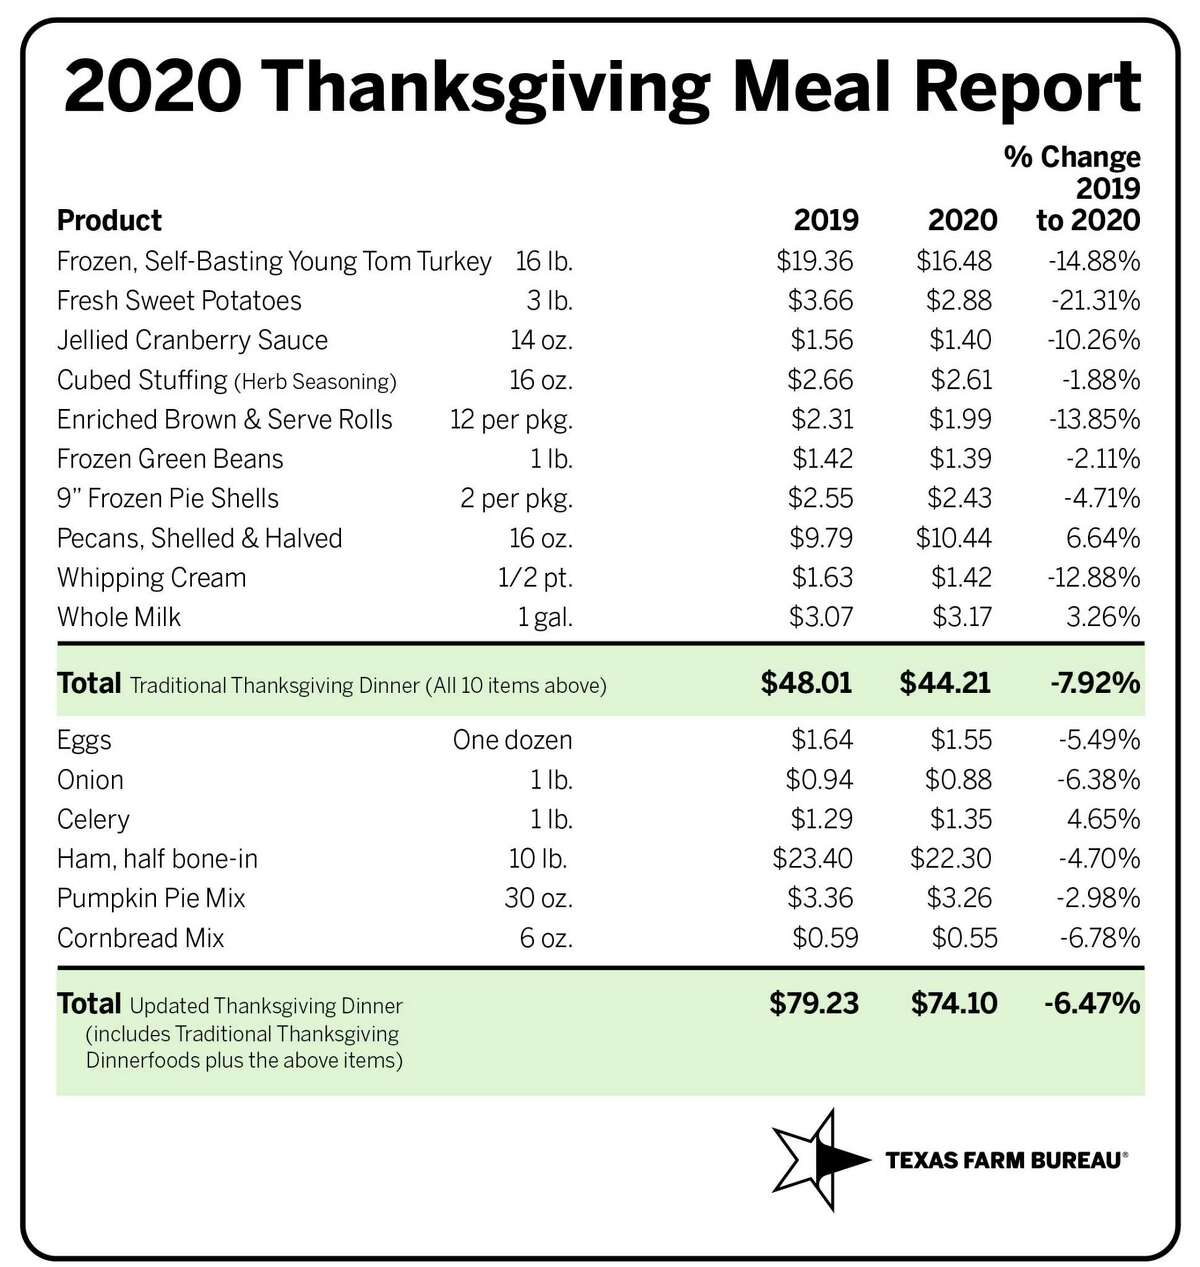 According to the Texas Farm Bureau, the cost of setting the table for Thanksgiving has gone down this year.